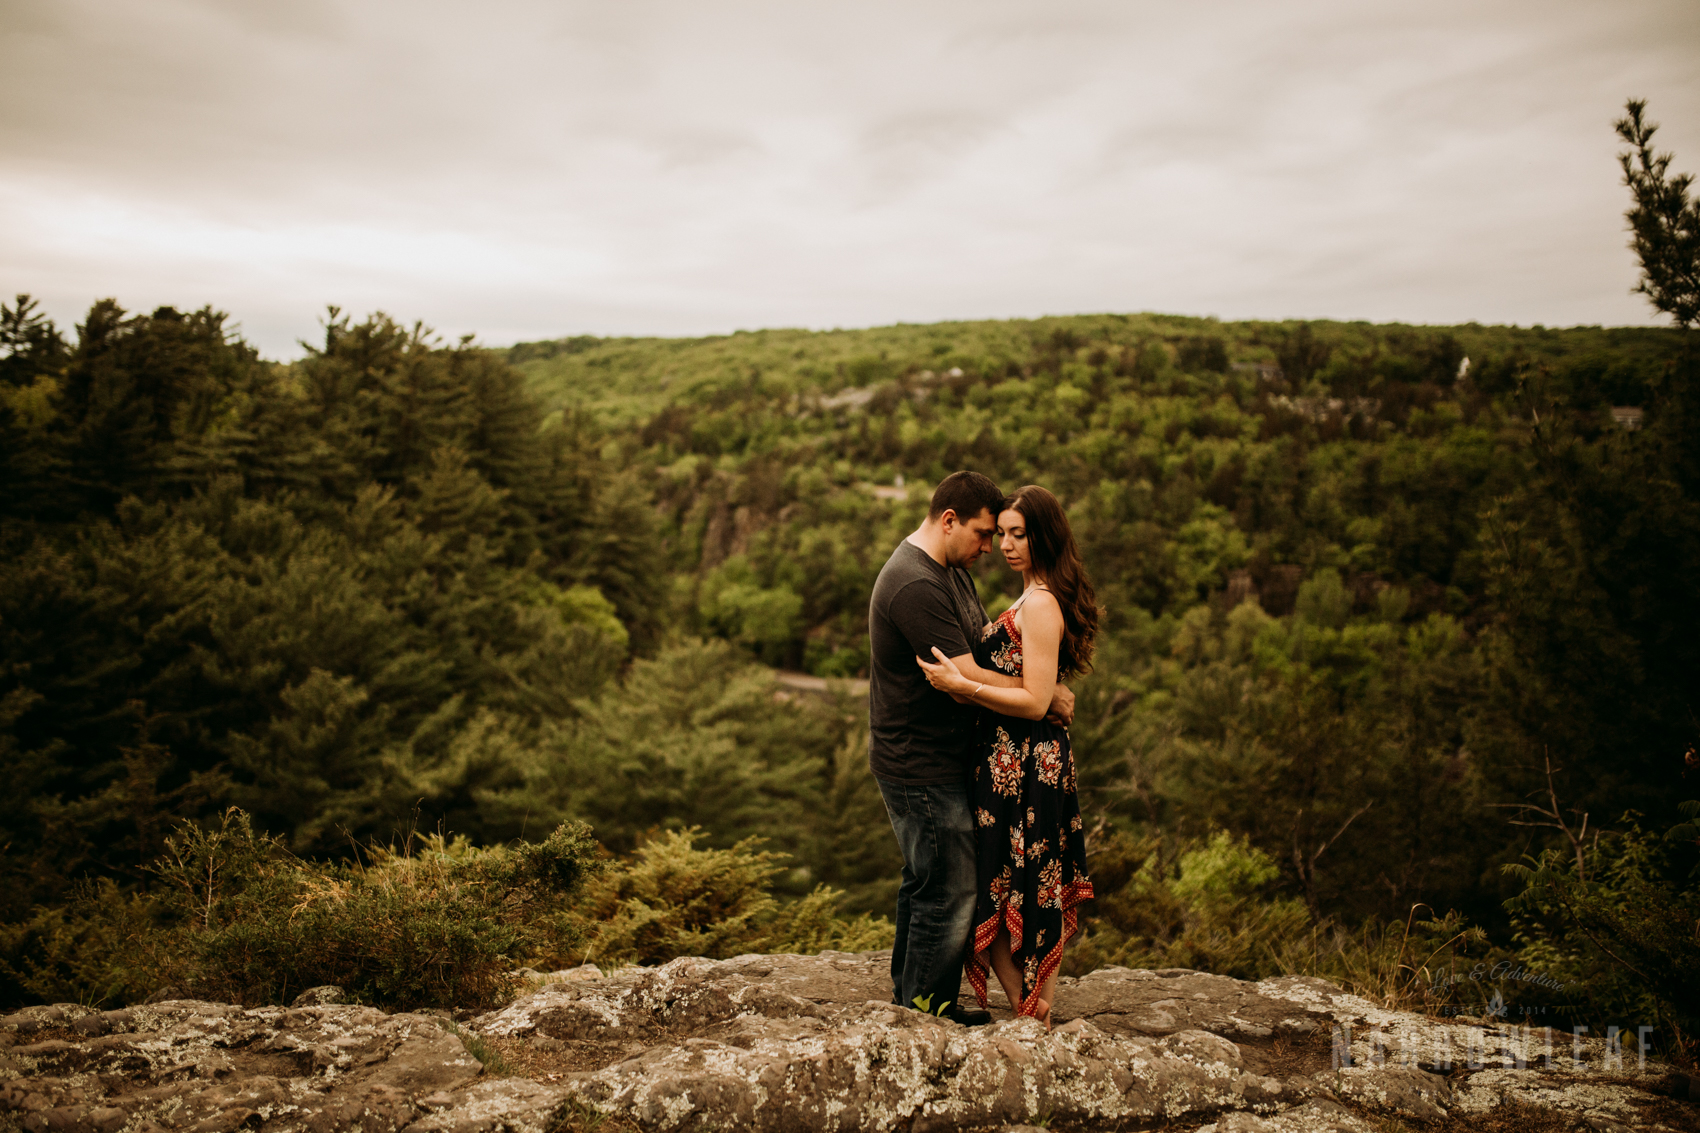 summer-hiking-engagement-photos-saint-croix-falls-wisconsin-moody-wedding-photography-0884.jpg